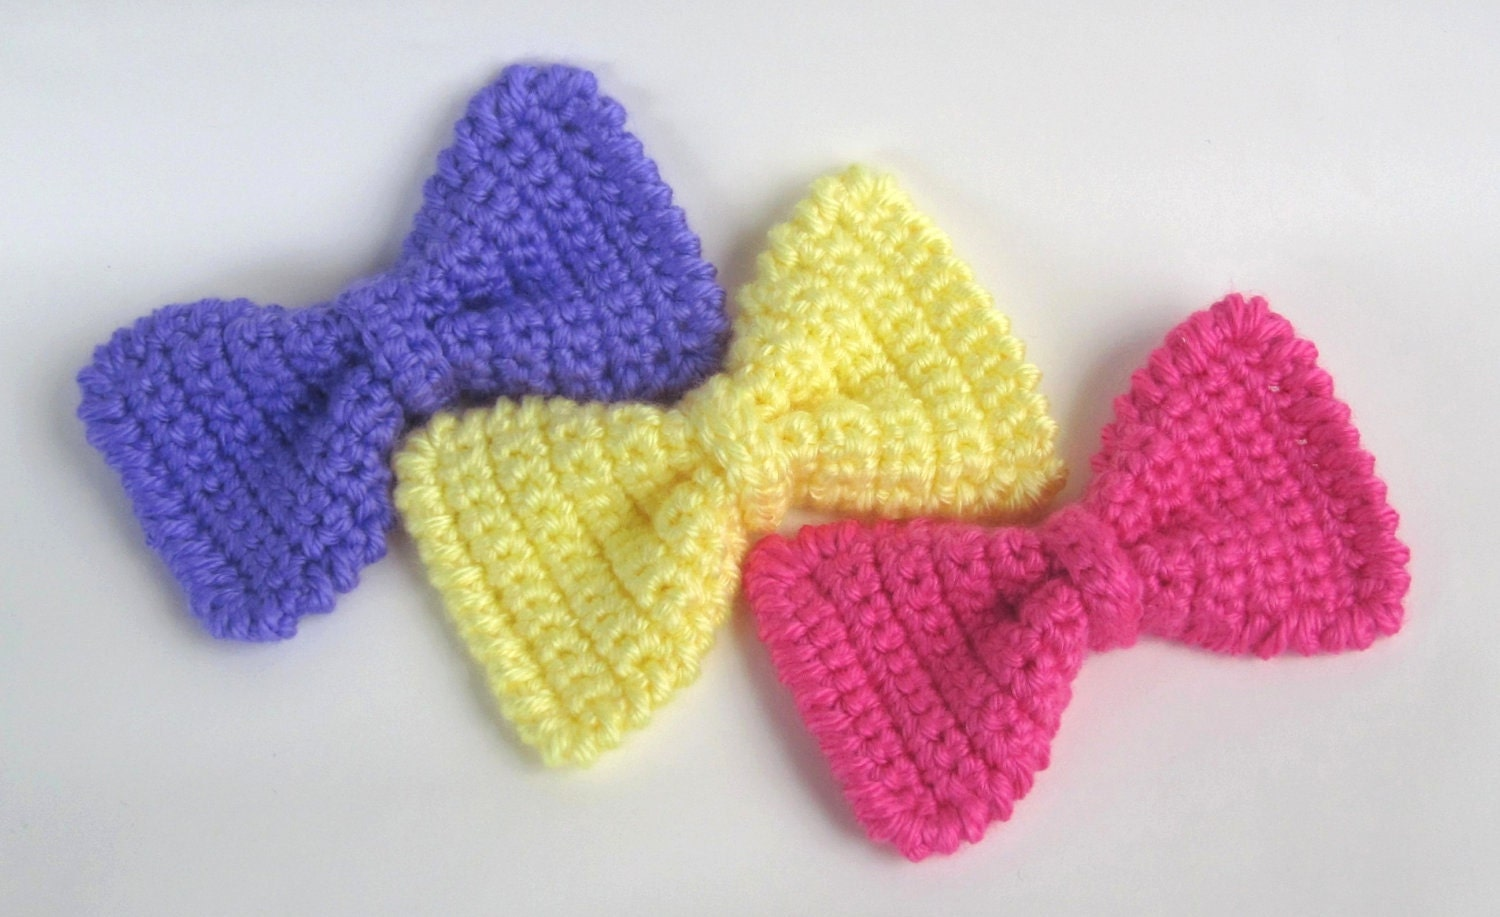 Crochet Hair Tie Patterns : Crochet PATTERN Baby Necktie Little Man Neck Tie by PoshPatterns